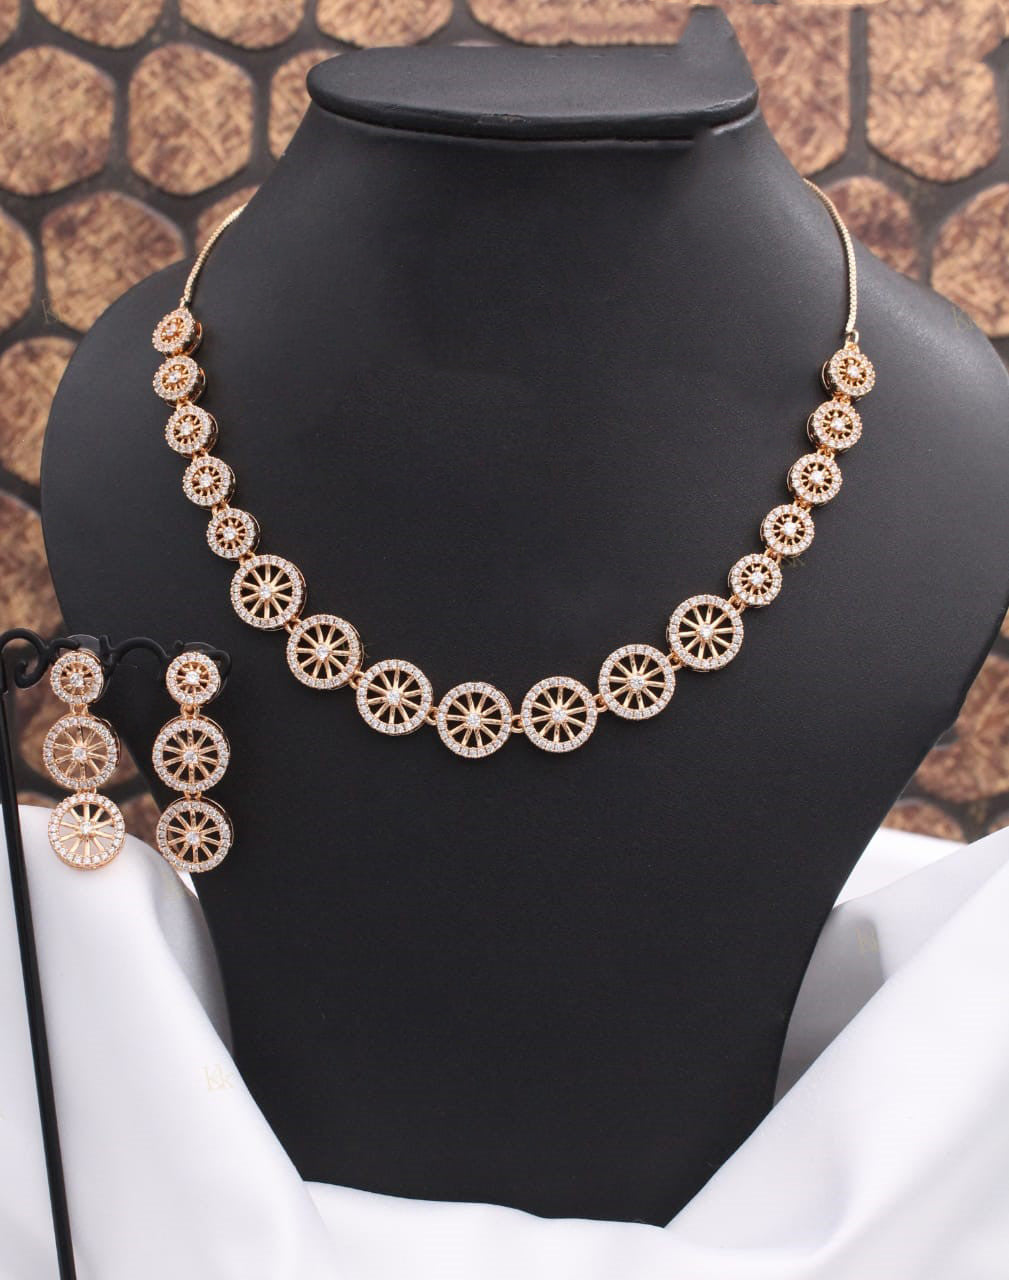 Pretty Neckpiece with Hanging Earrings